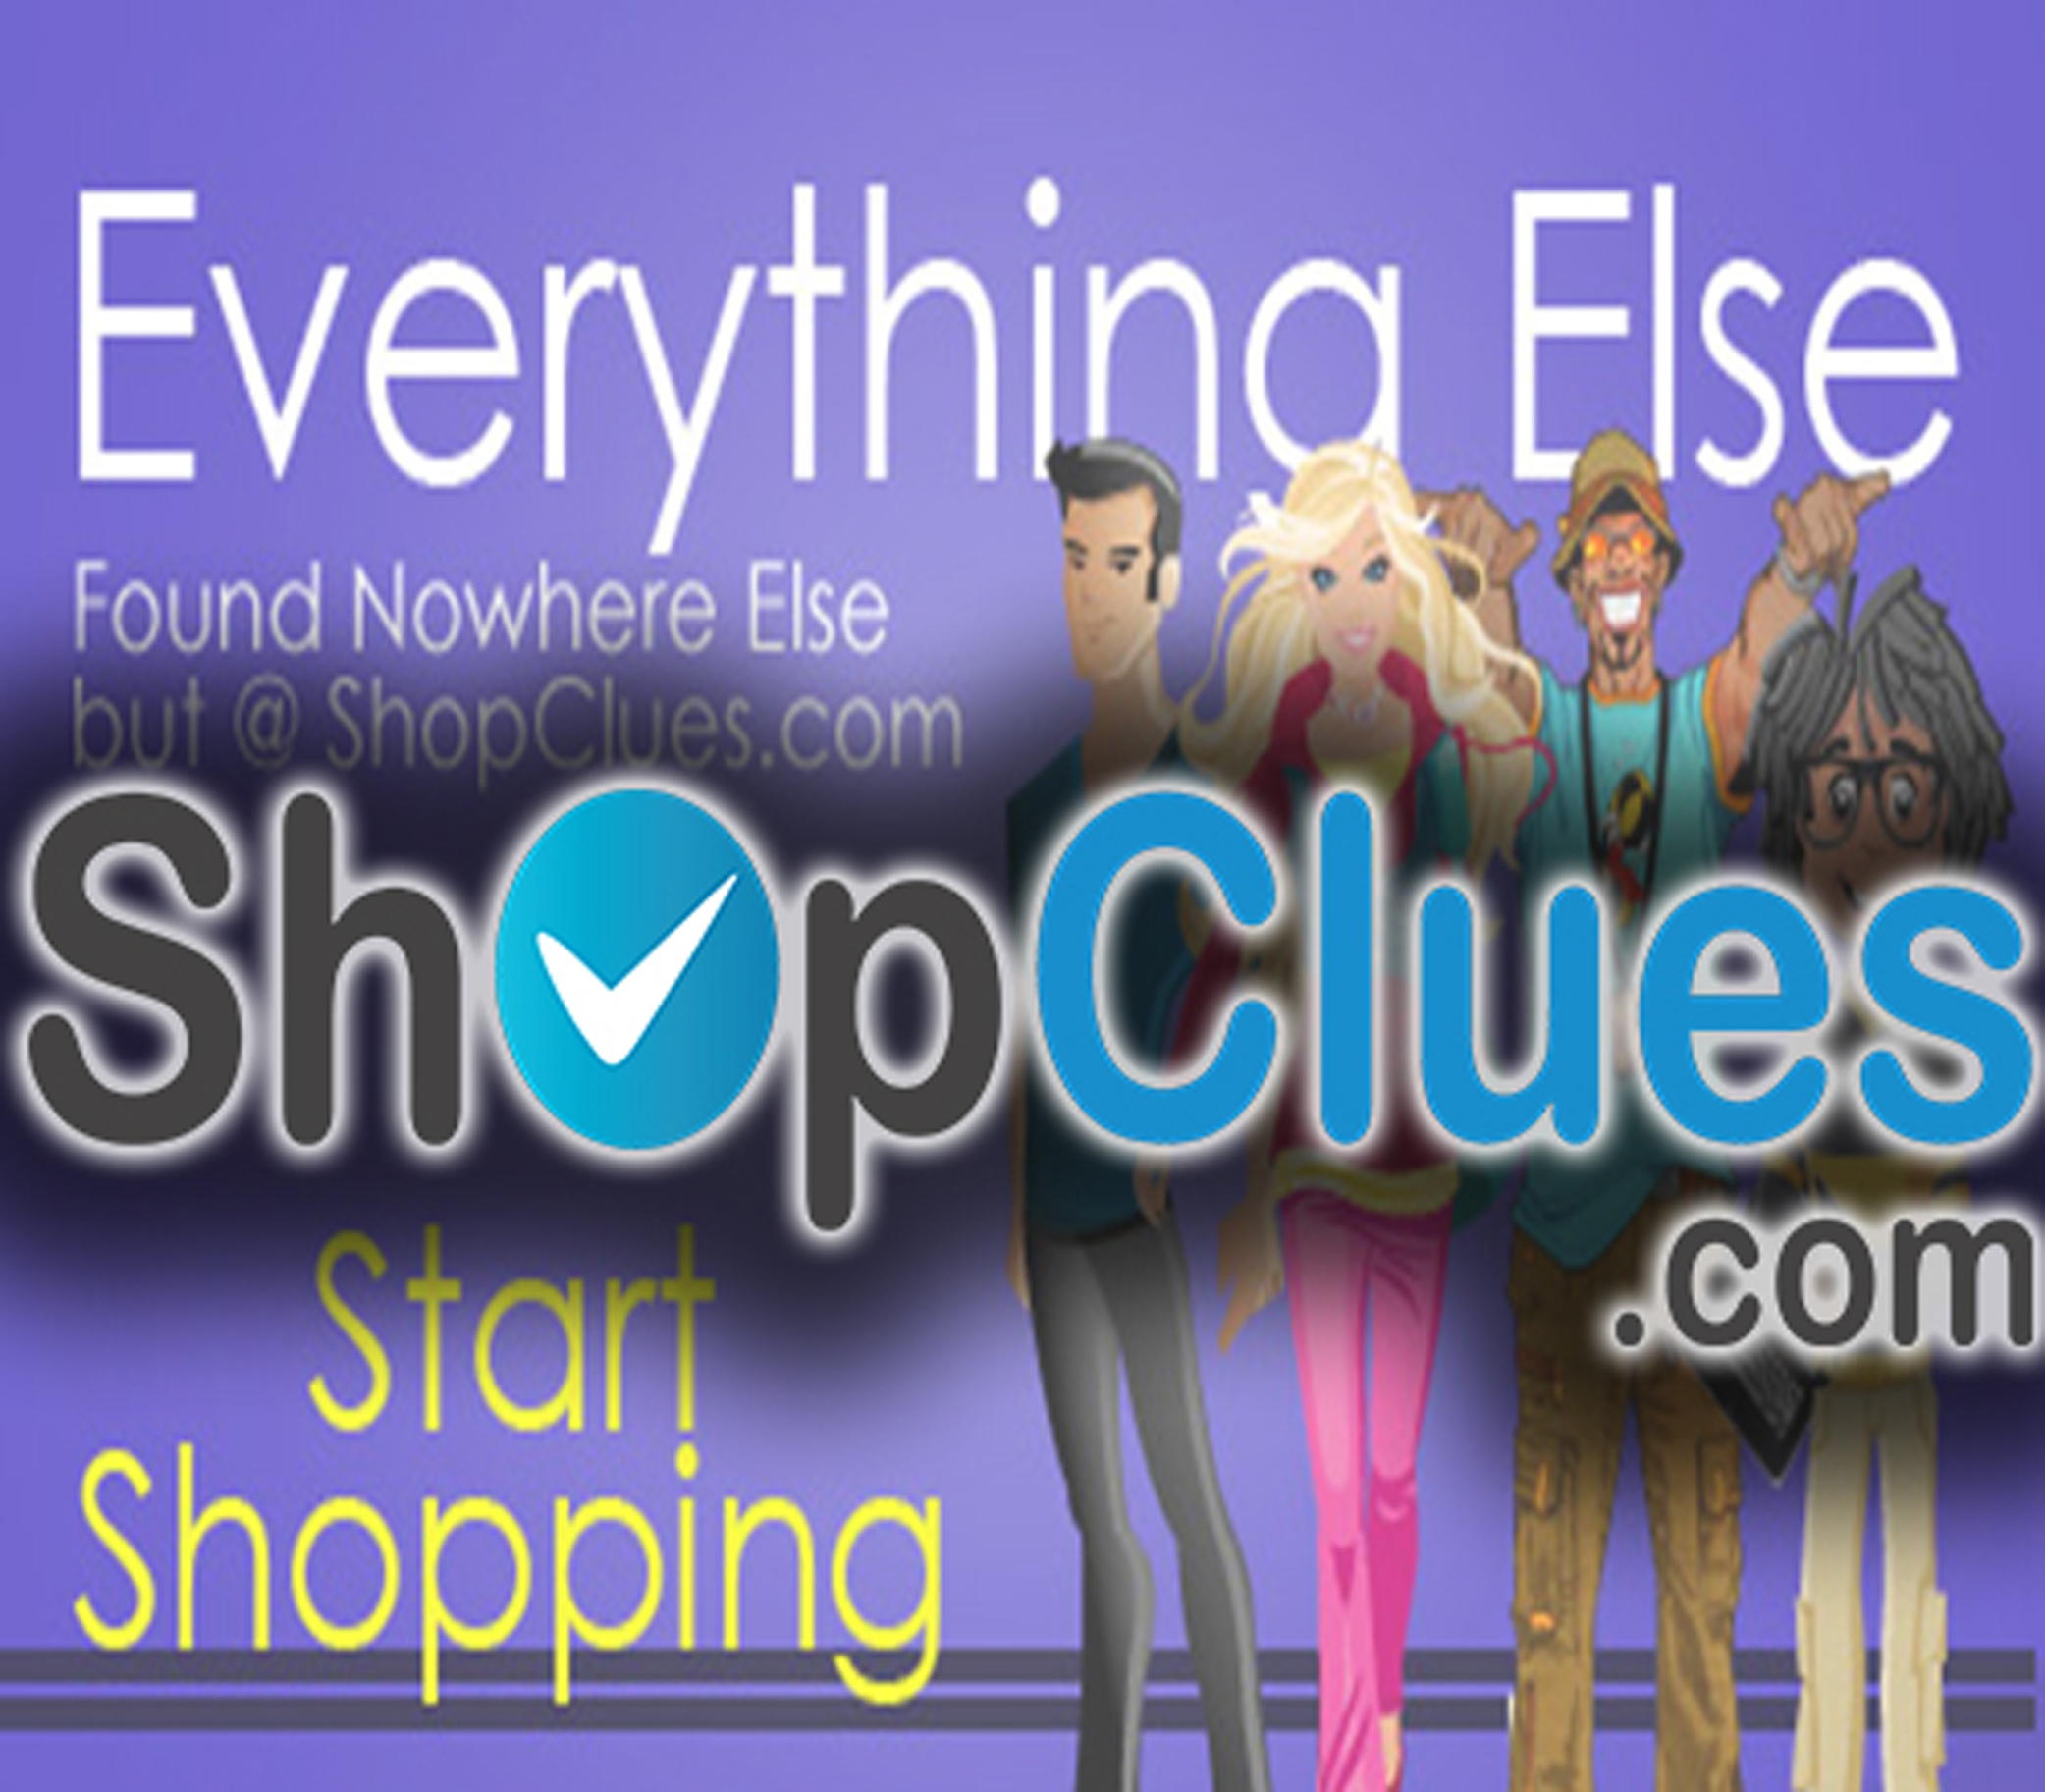 ShopClues Gift Voucher - Rs.1000